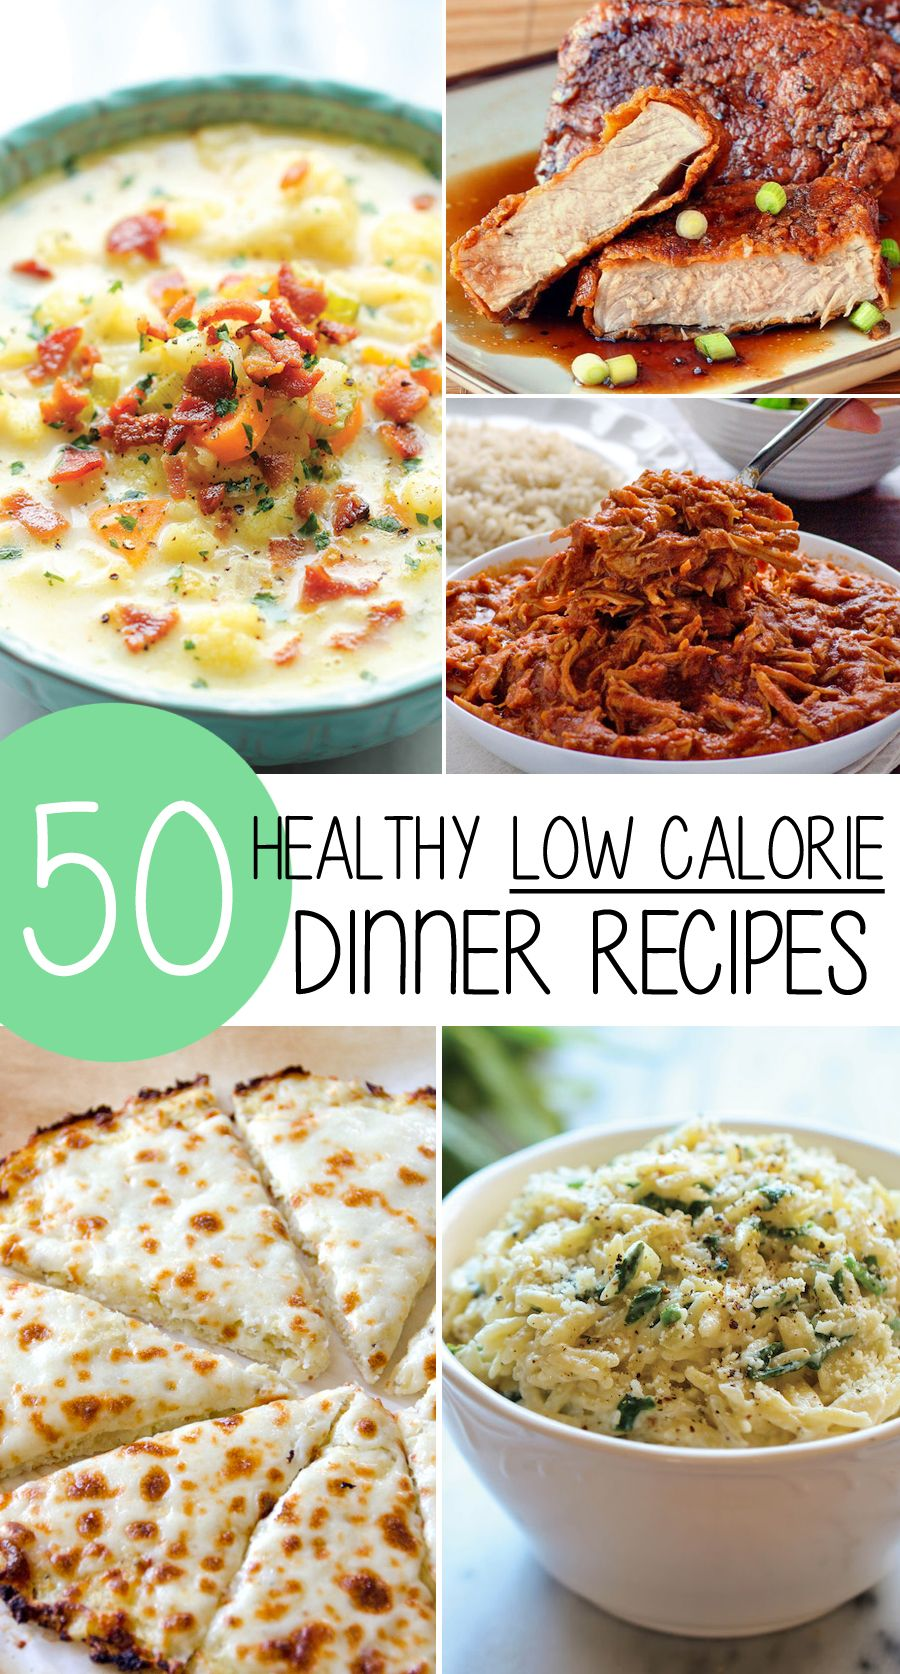 Healthy Dinner Ideas For Weight Loss Pinterest